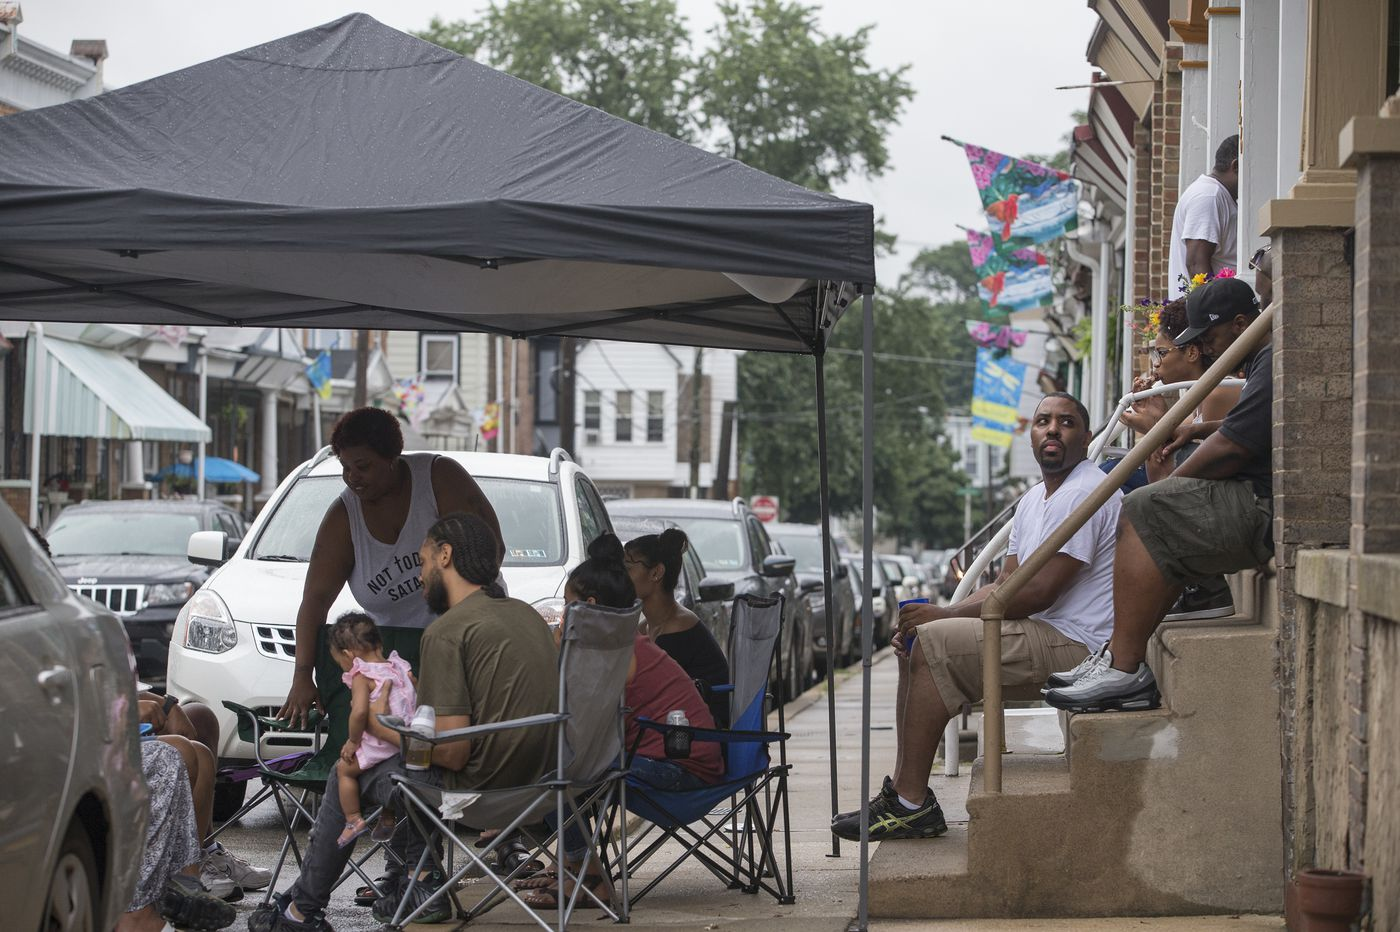 Philly has 922 streets banned from having block parties. Why?